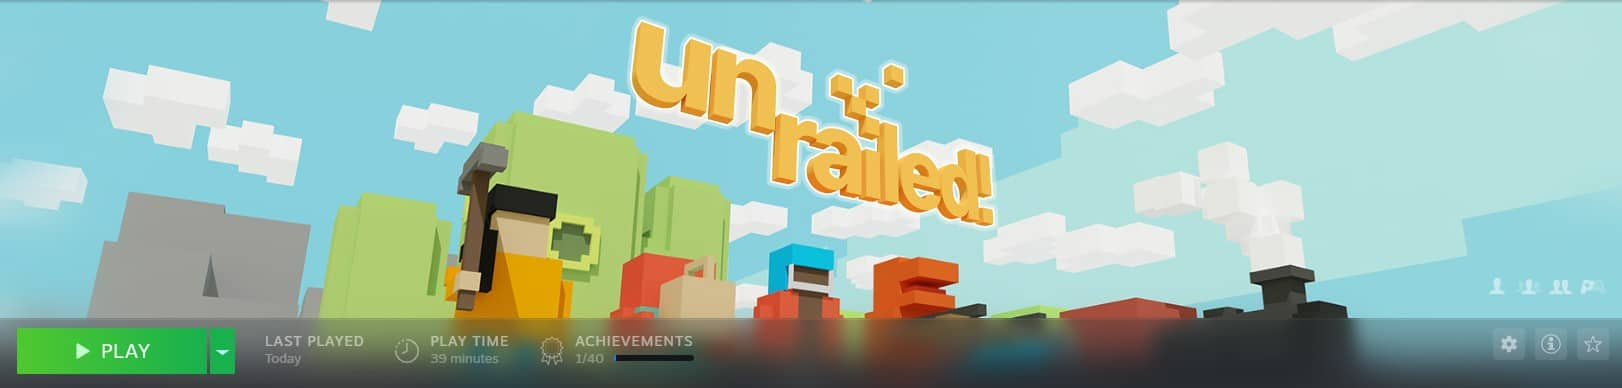 Unrailed video game screenshot